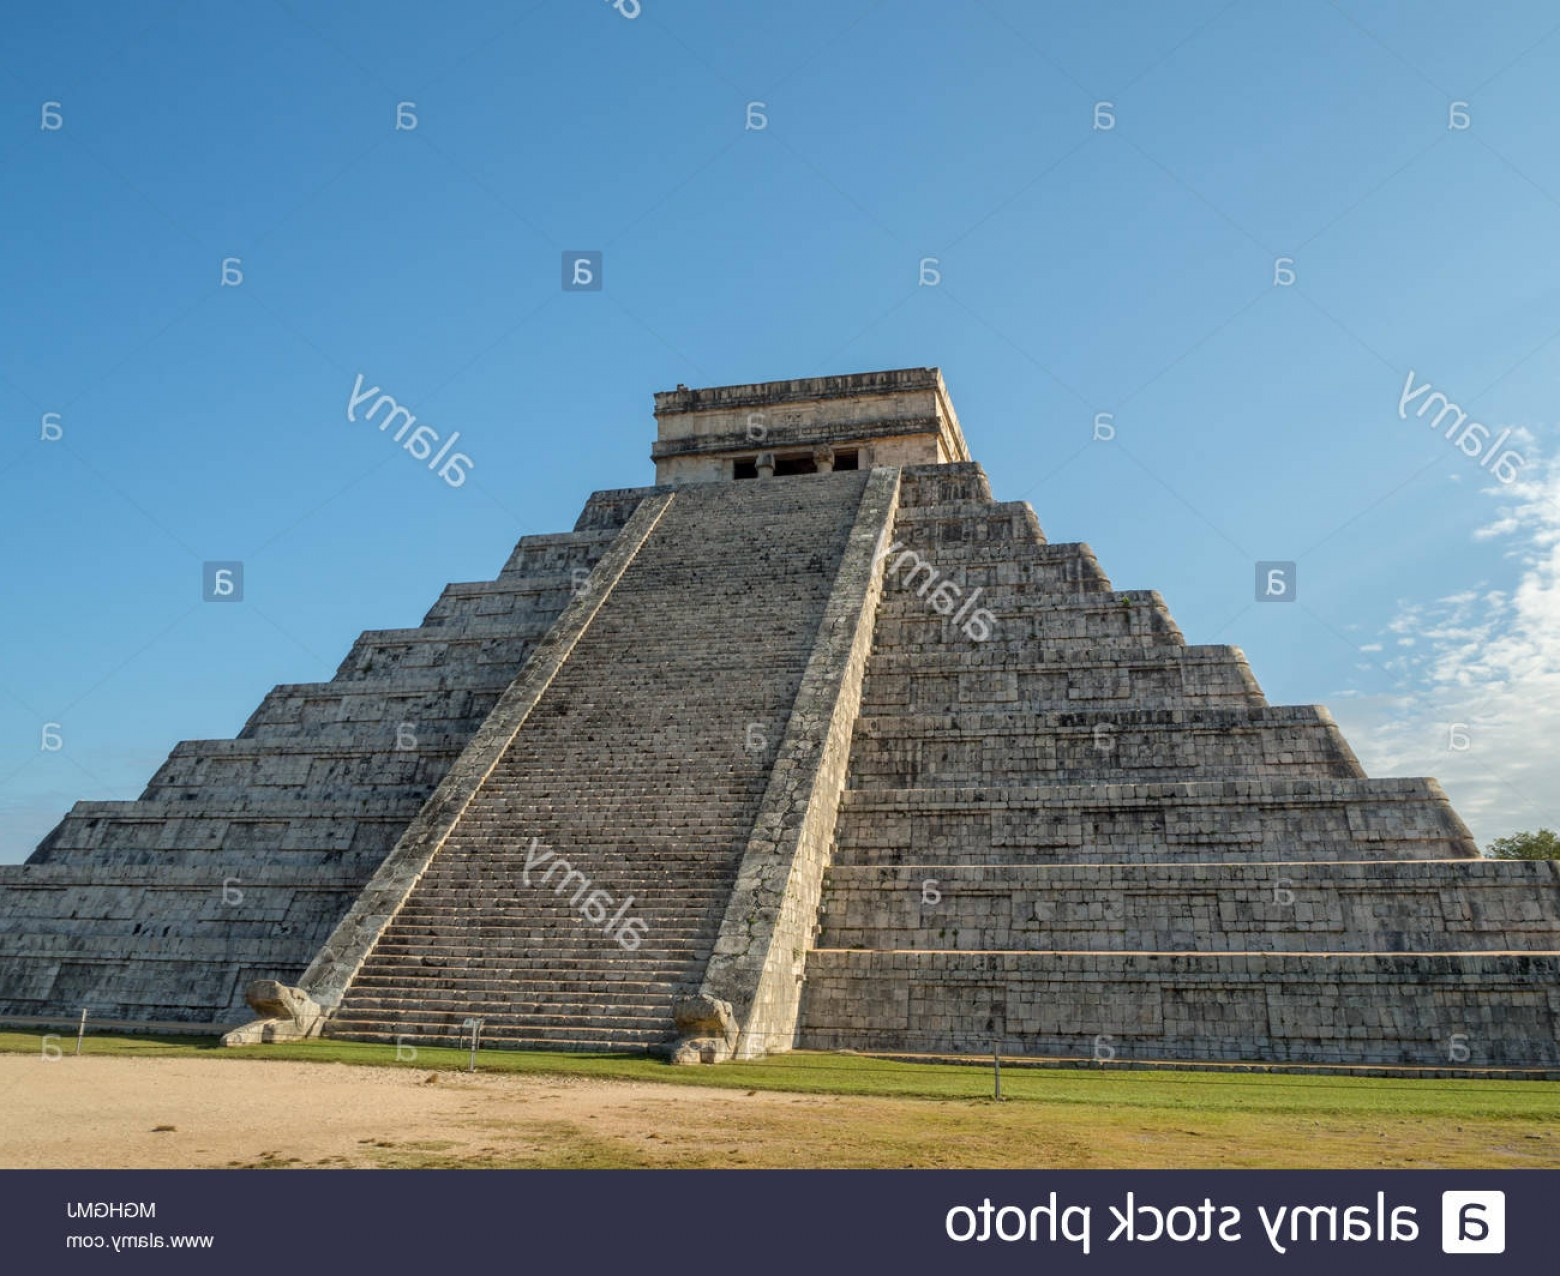 Vector South America Ancient Ruins: Chichen Iza Mexico South America El Castillo Temple Of Kukulcan Pyramid Ruins Of The Mayan Ancient City Of Chichen Itza In The Yu Image